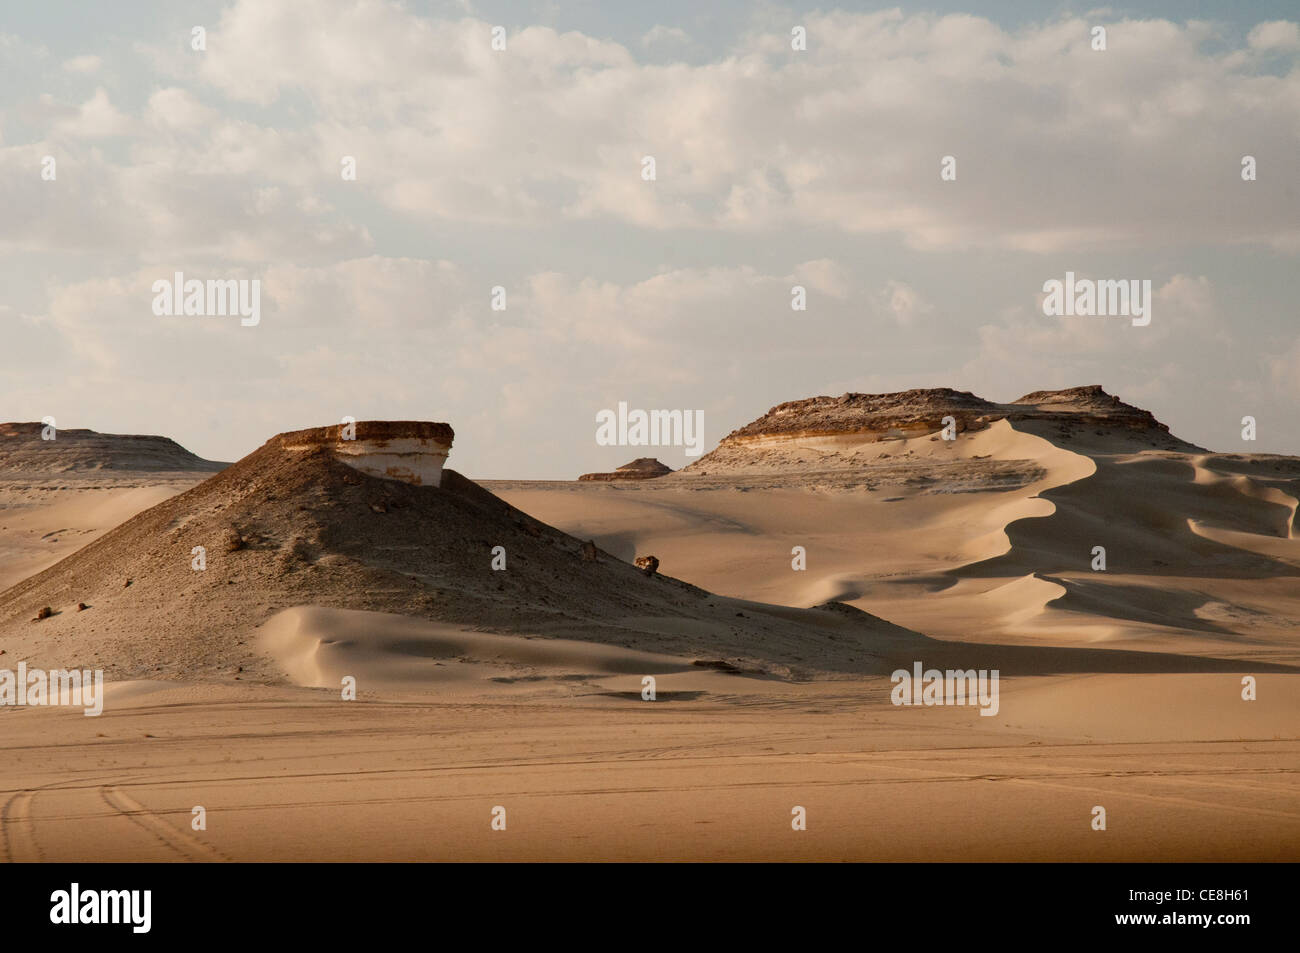 Sand dunes in the Great Sand Sea, Western Desert, Egypt - Stock Image